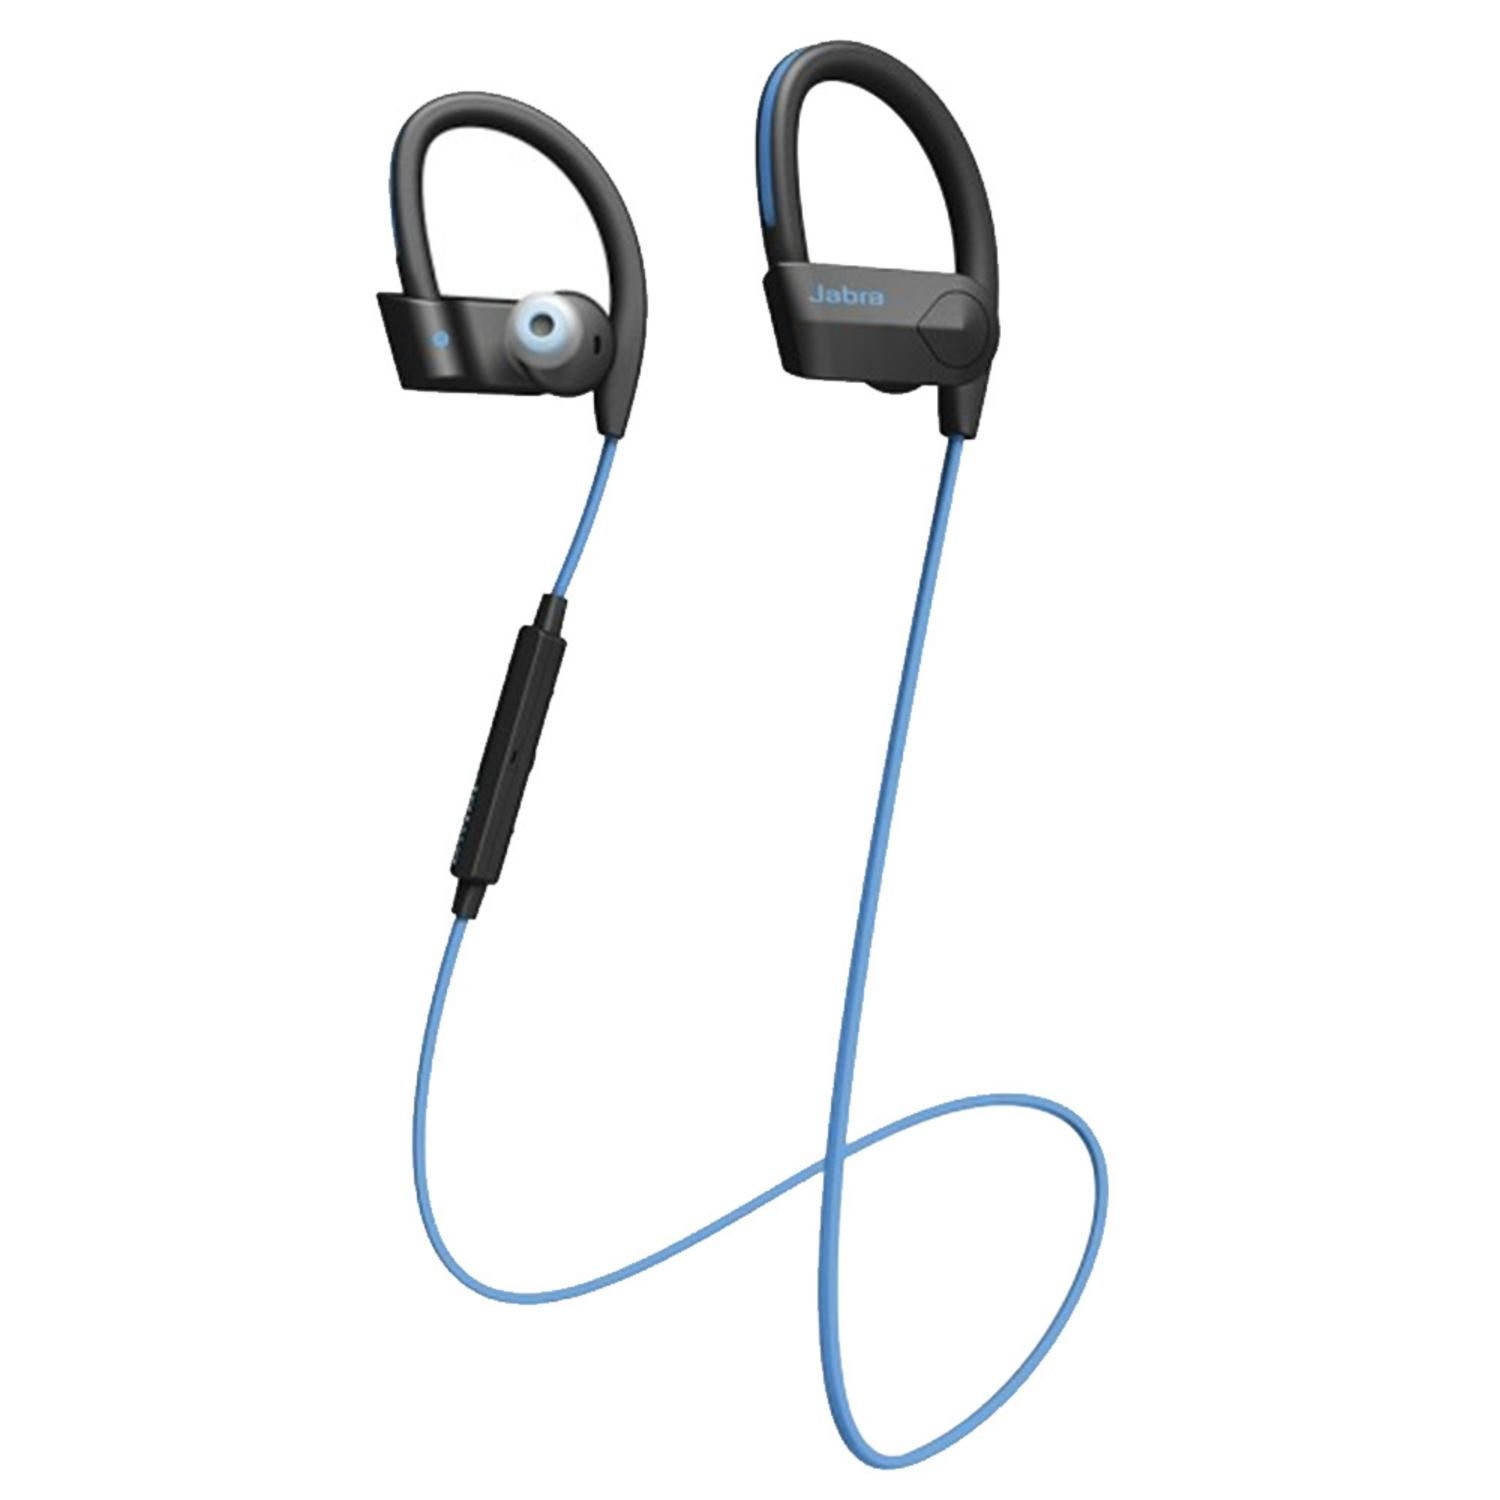 10 Best Wireless Headphones For Your Workout Bluetooth Earbuds Wireless Wireless Headset Wireless Earbuds